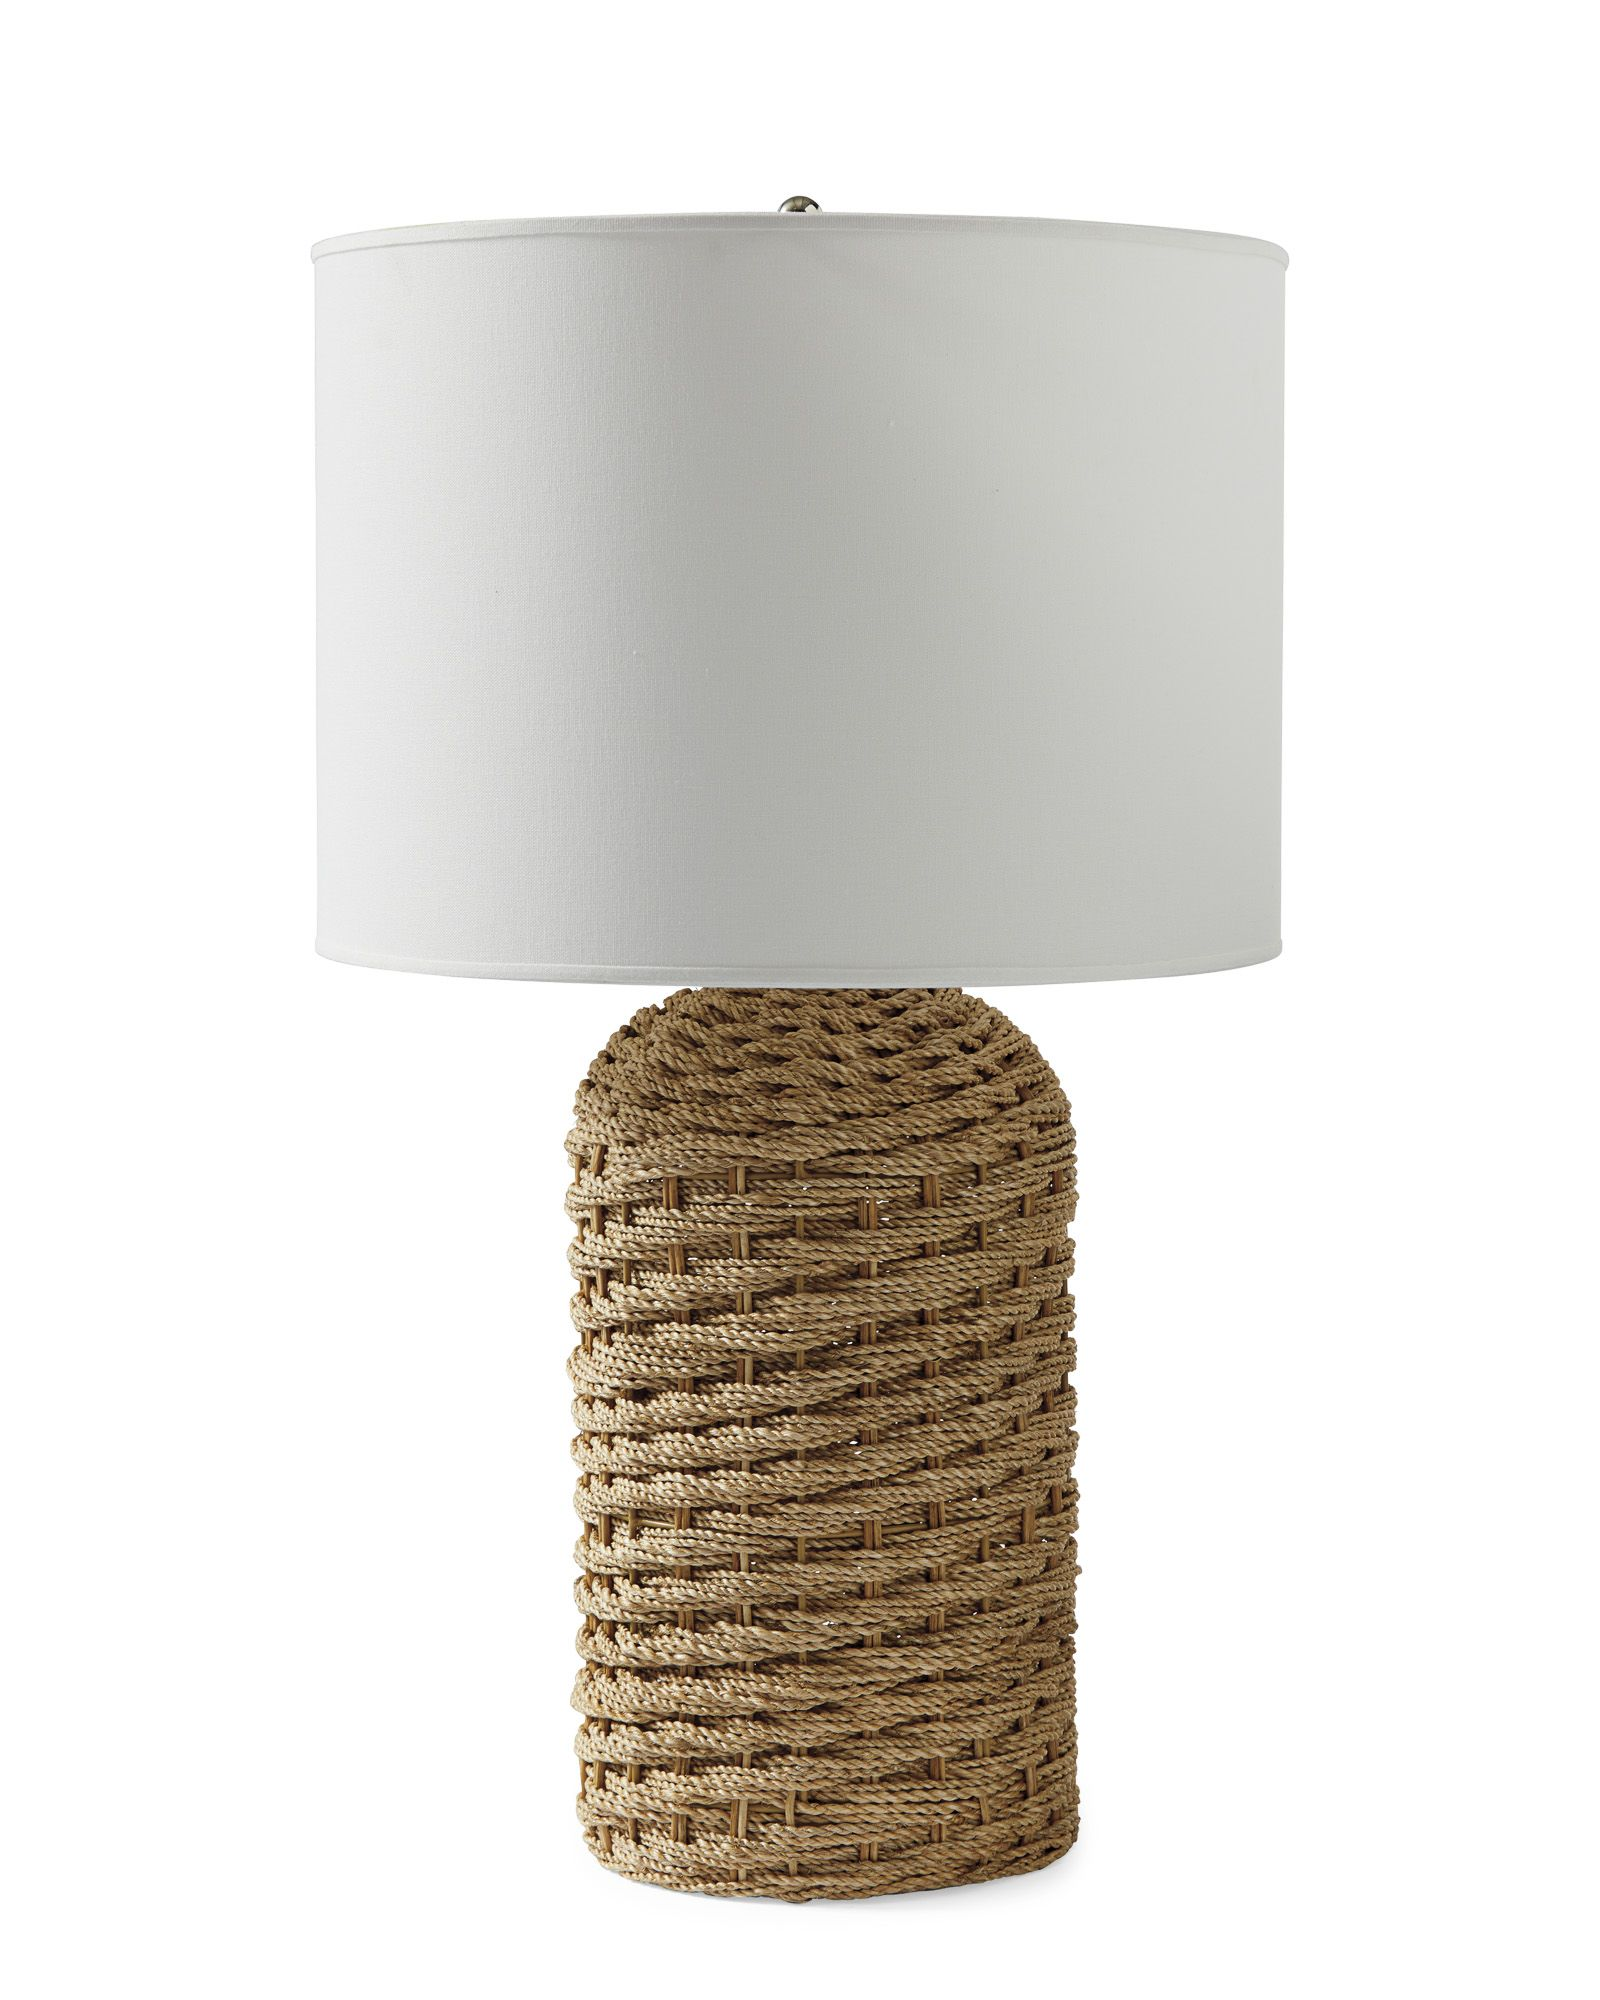 Abbott Table Lamp In 2020 Table Lamp Lamp Rope Table Lamps